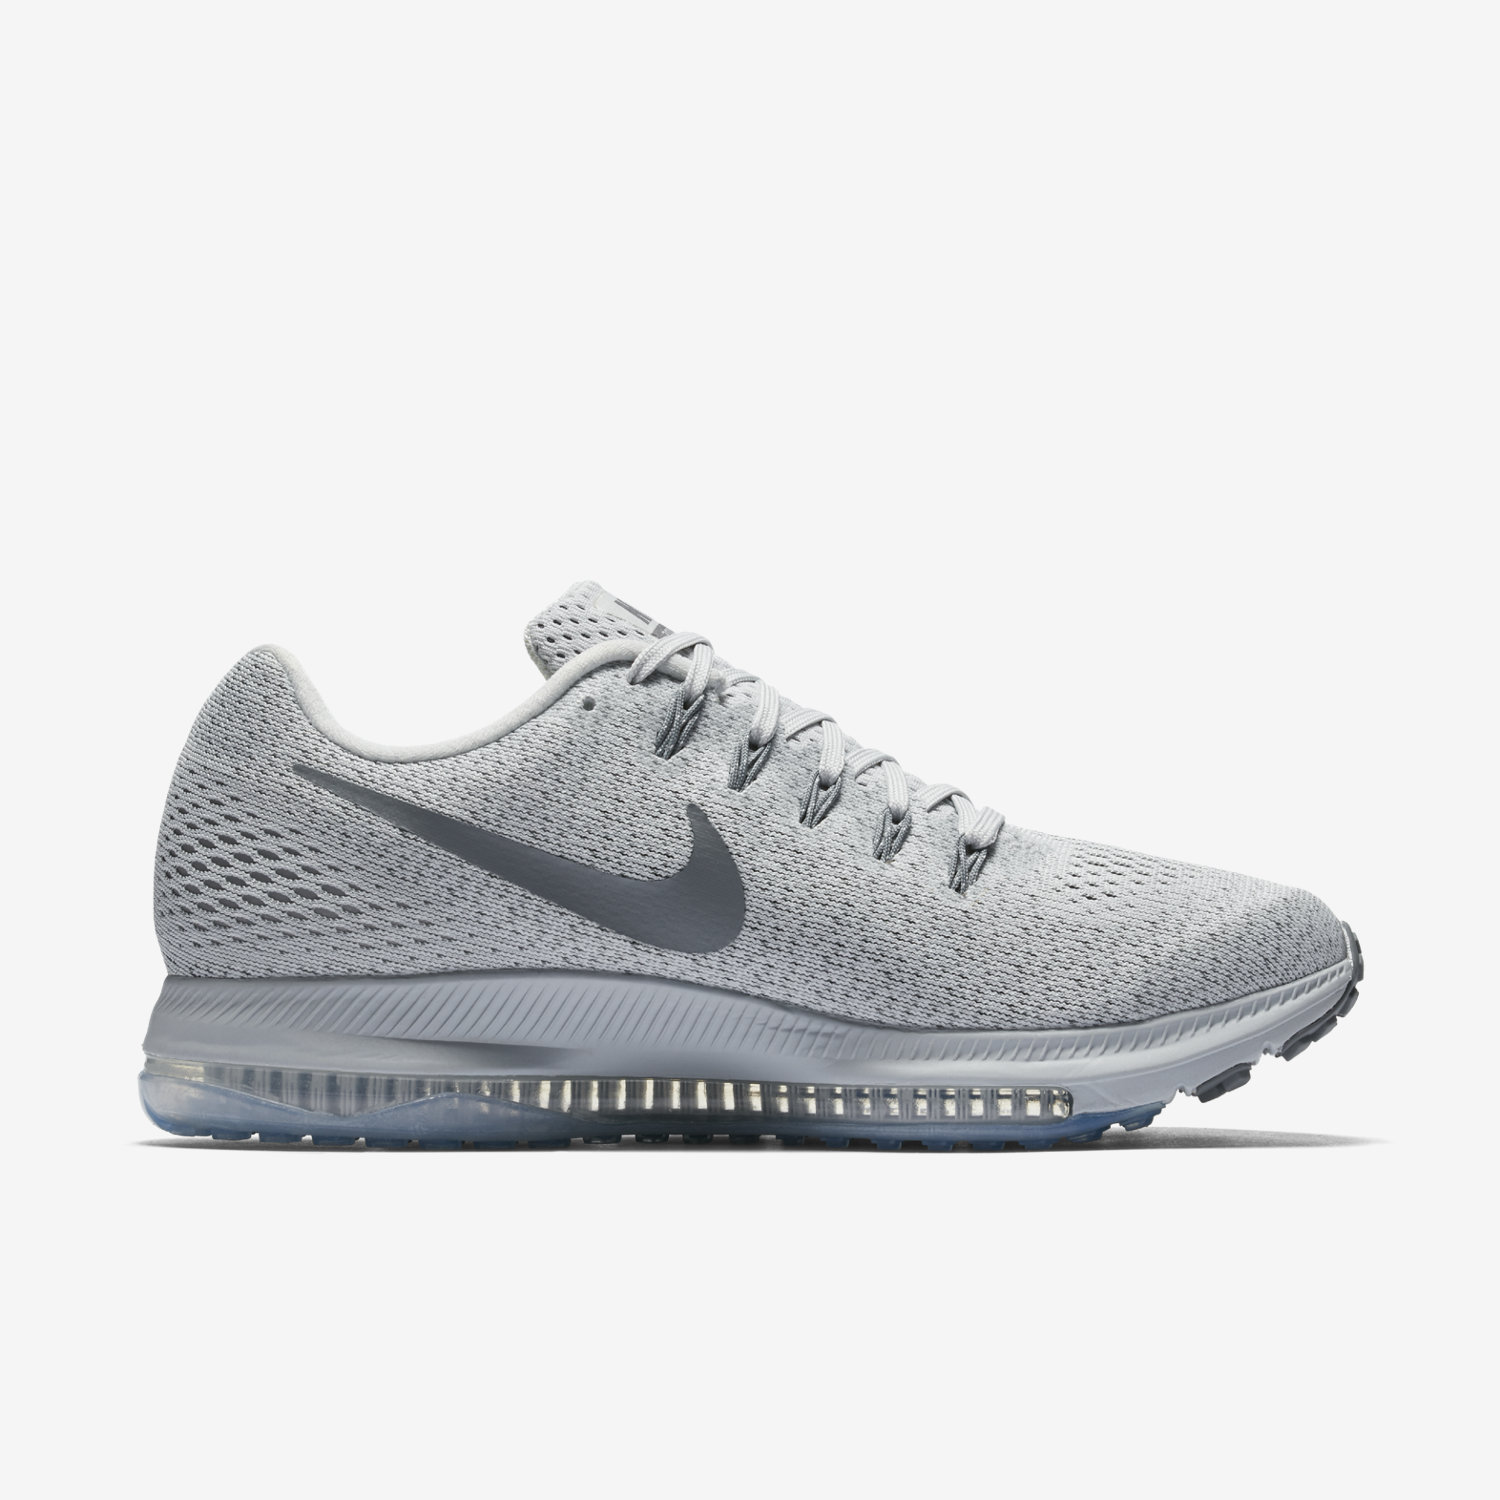 1cc53f5d569 ... Nike Zoom All Out Low Zapatillas de running - Mujer.